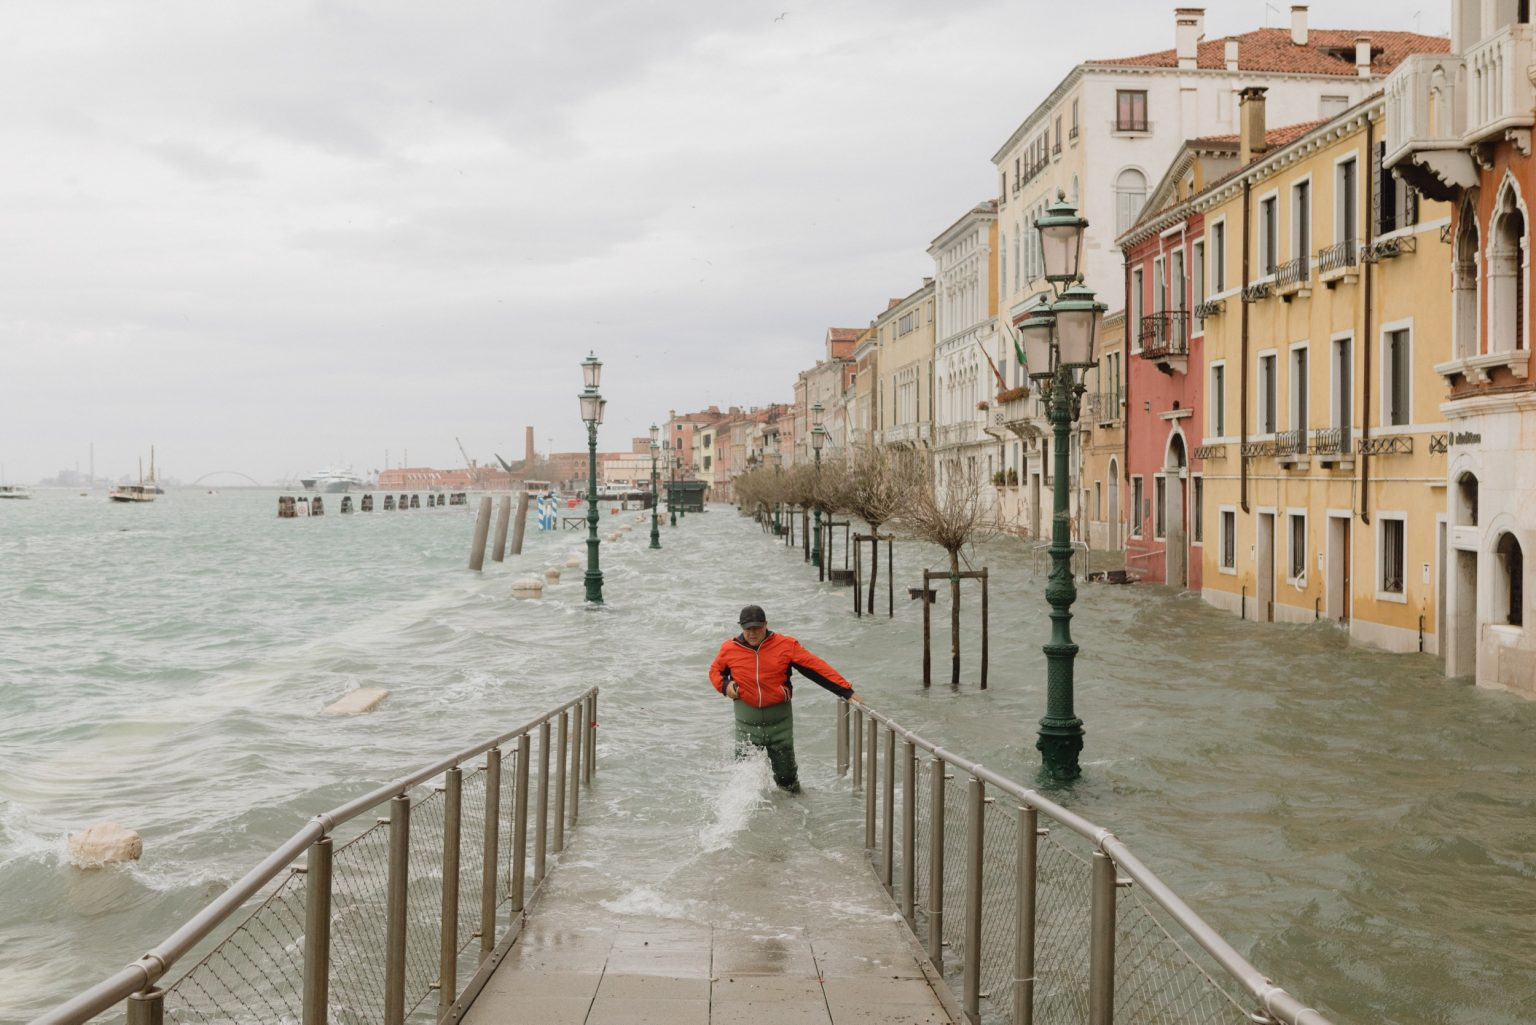 A man reaches a bridge in the Zattere shore, when water of the Giudecca Canal invaded the city. Exceptional acqua alta, or high water, in Venice, where the tide went up to 187cm, the highest level since the 1966 flood. Brugnaro, the mayor declared a state of disaster. Venice, Italy, 2019